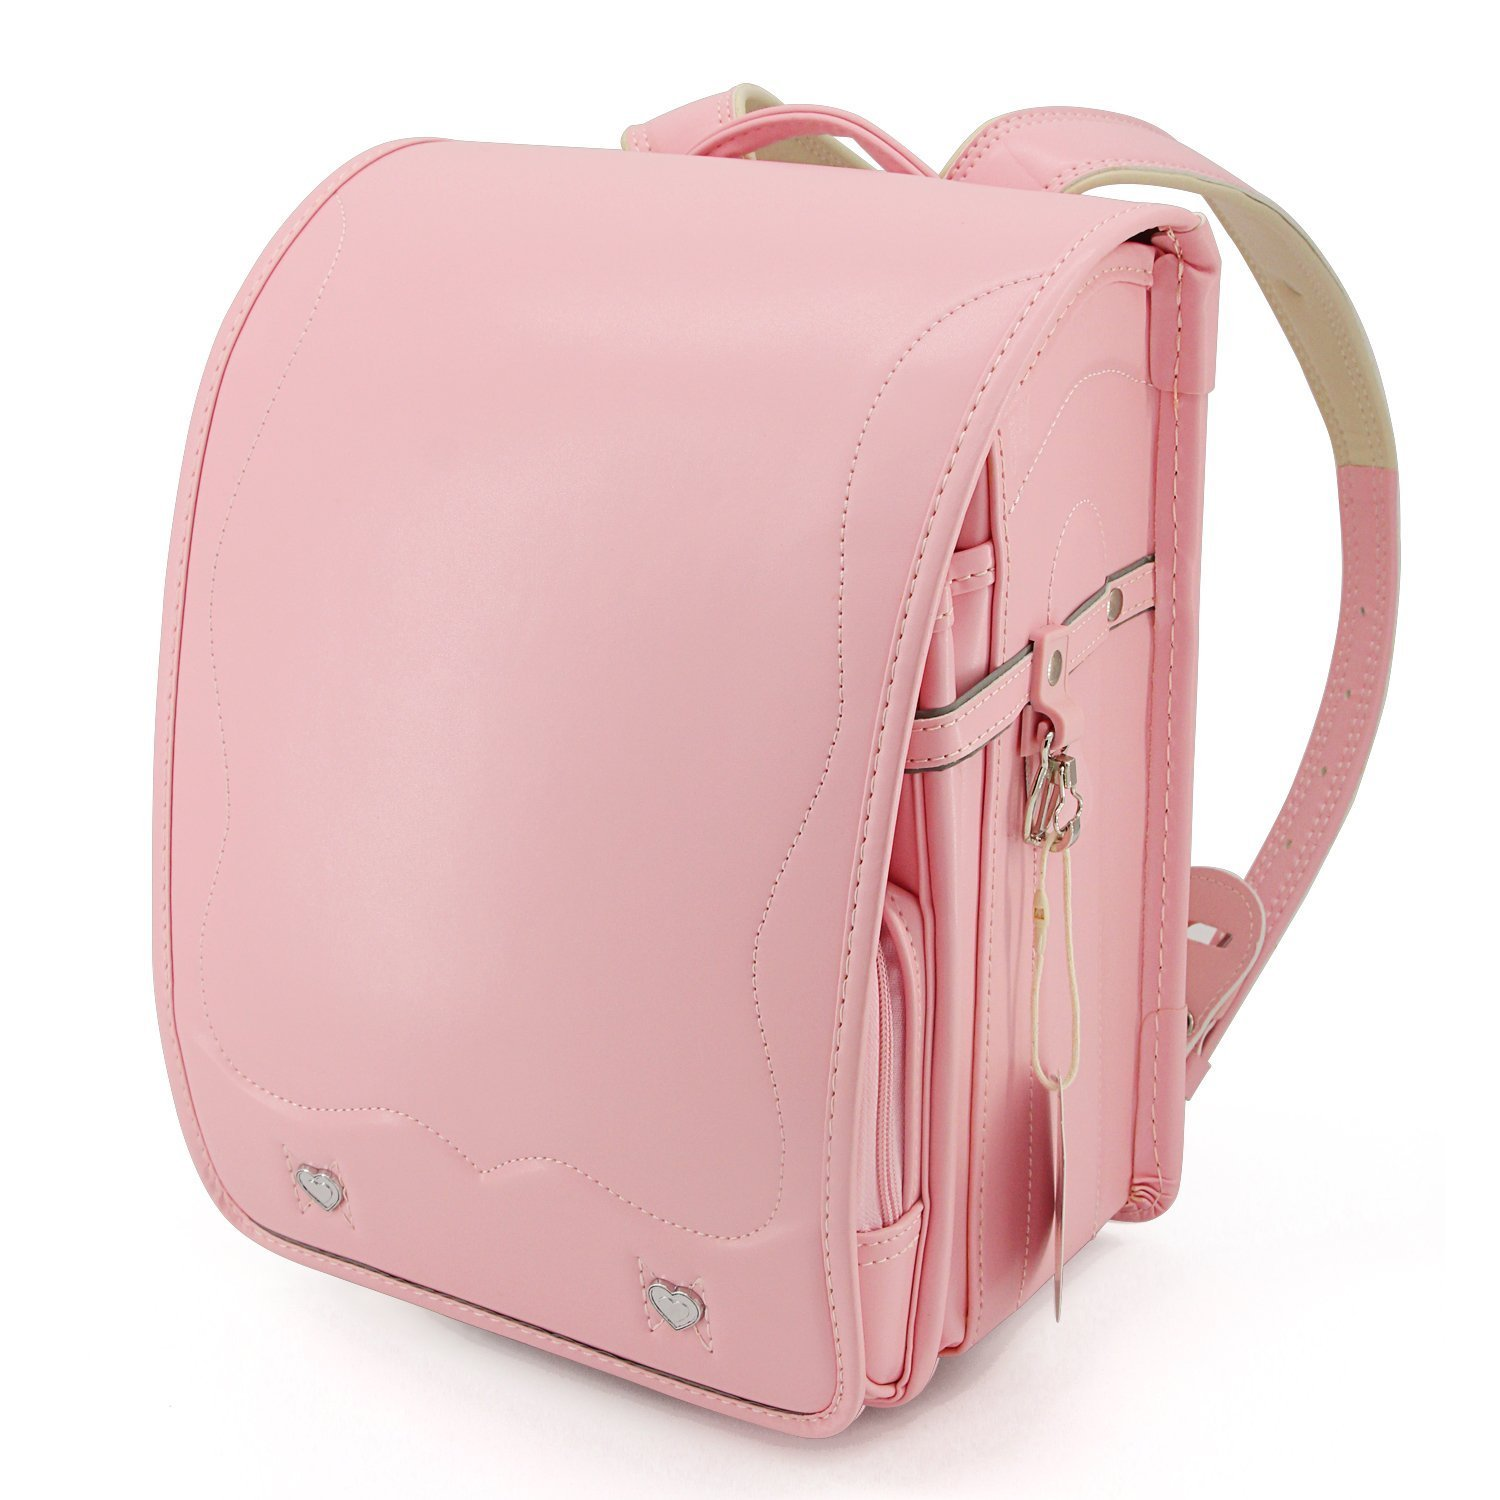 Ransel Randoseru upscale full automatic Japanese schoolbags for girls and boys pink by Baobab's Wish